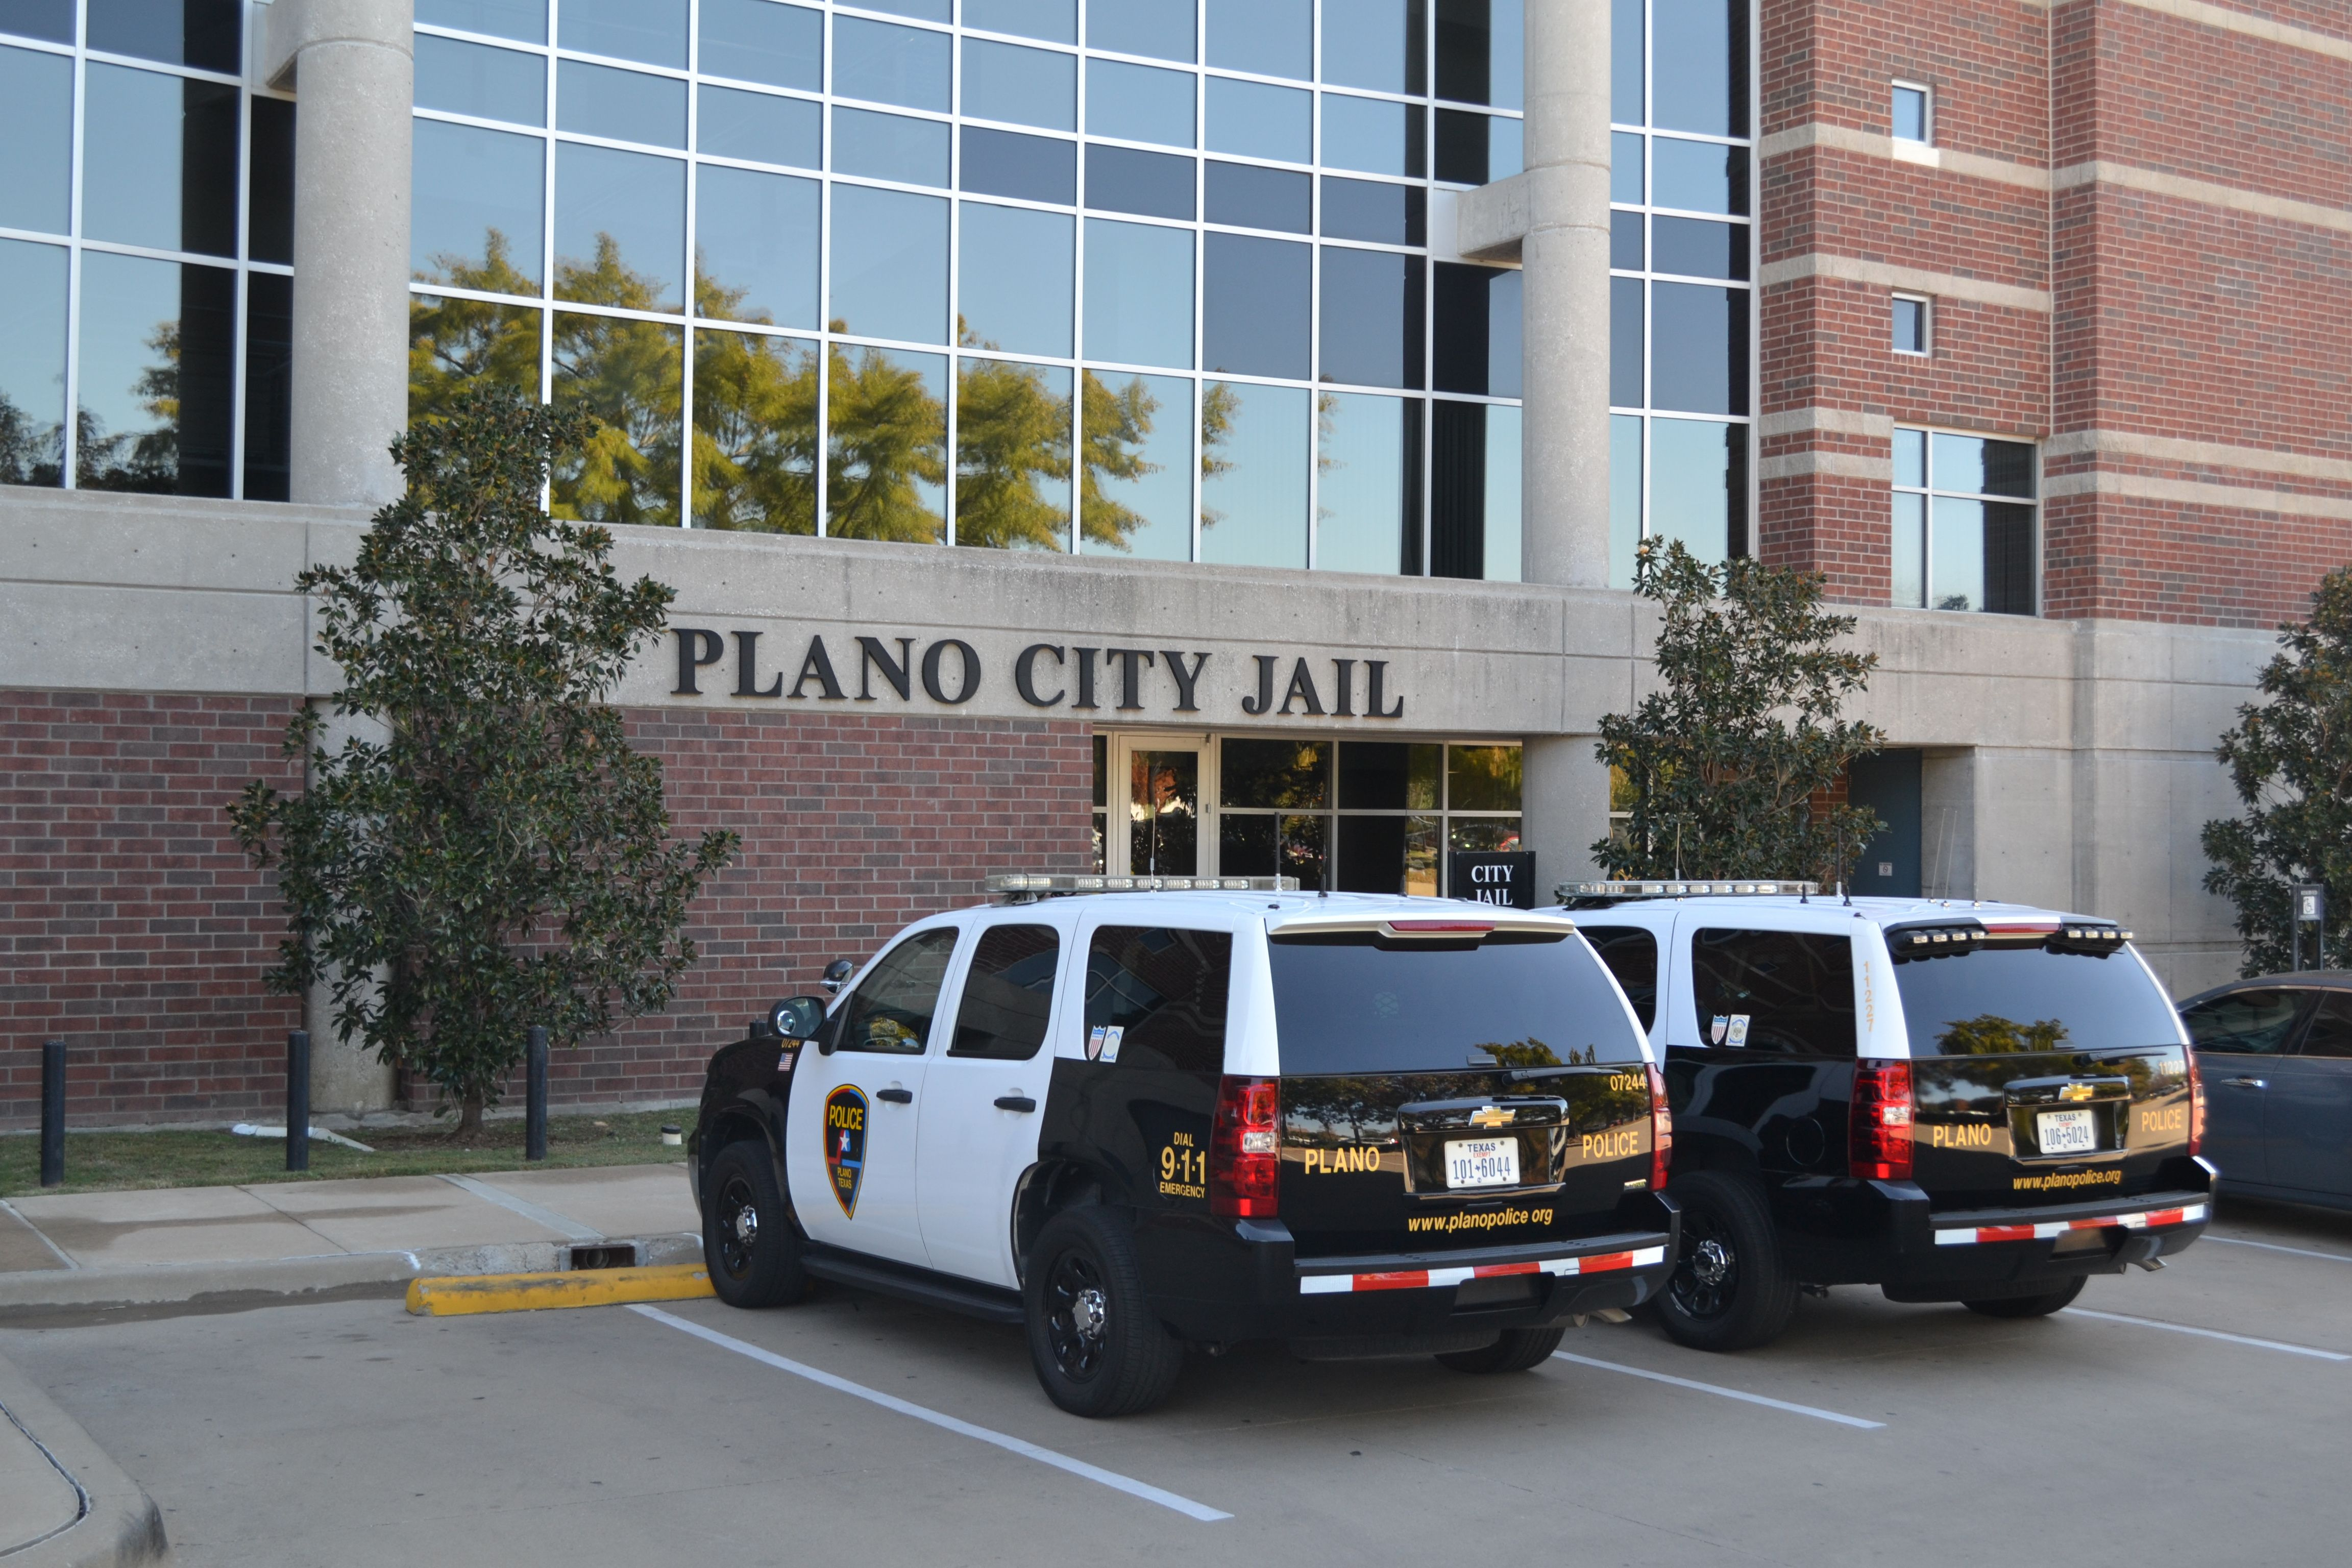 Plano City Jail | About the Plano Police Department | Pinterest ...